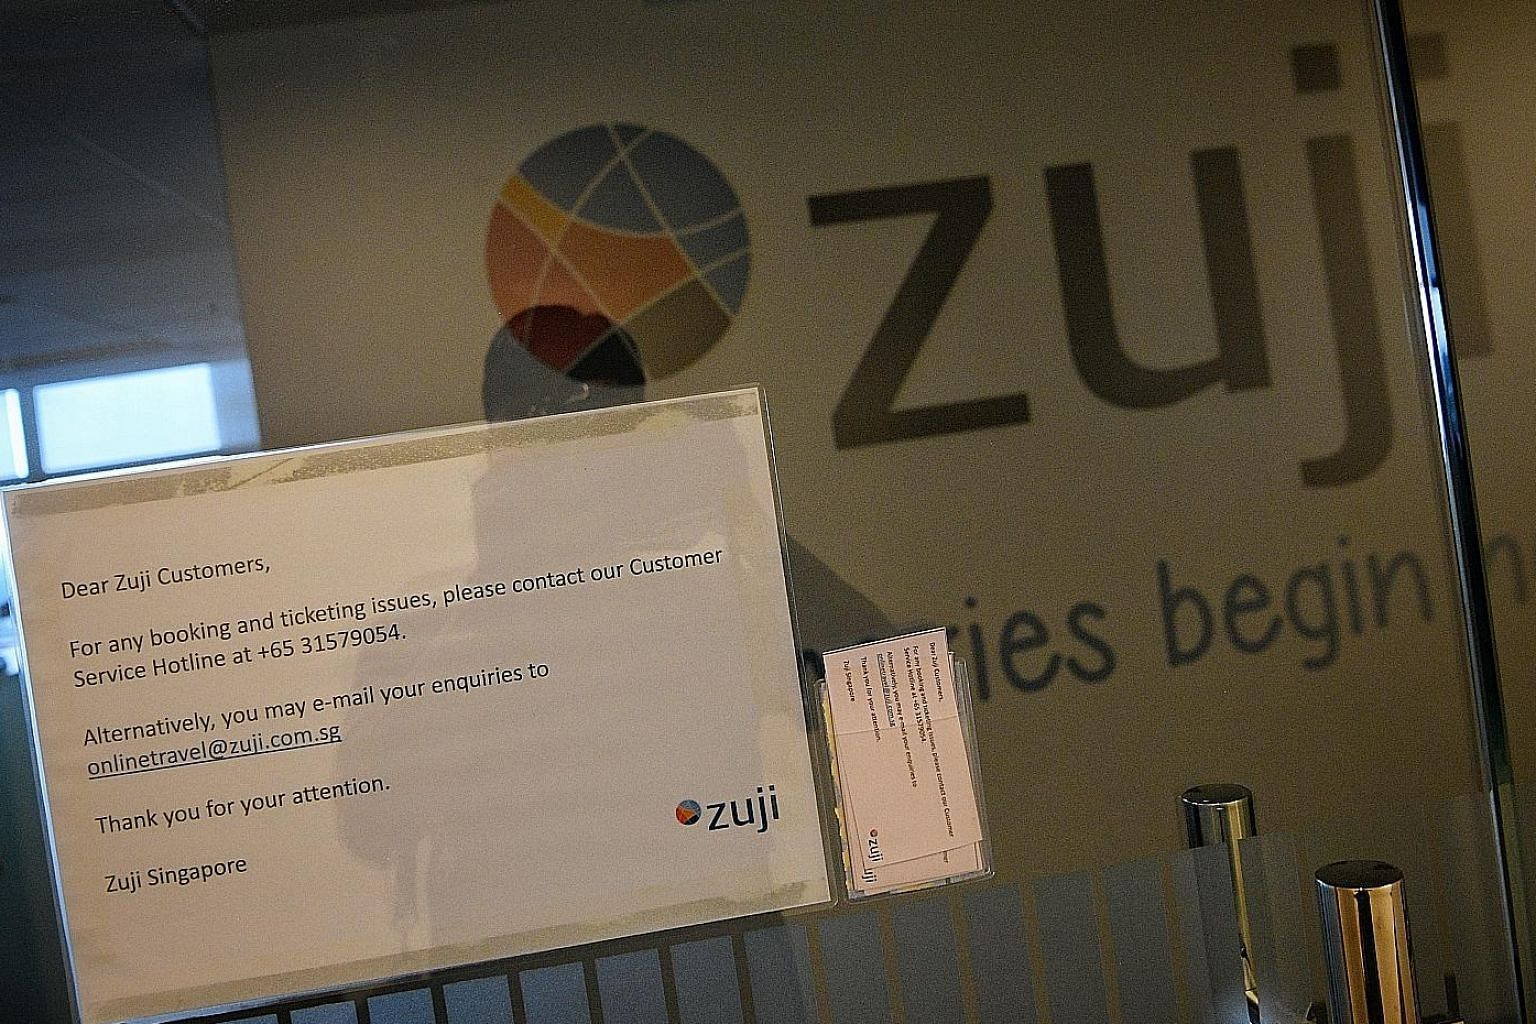 The only trace of Zuji's presence when The Straits Times visited its office yesterday was a note to its customers posted on the door. The Singapore Tourism Board said Zuji's licence lapsed on Dec 31 last year, and it can no longer provide travel prod